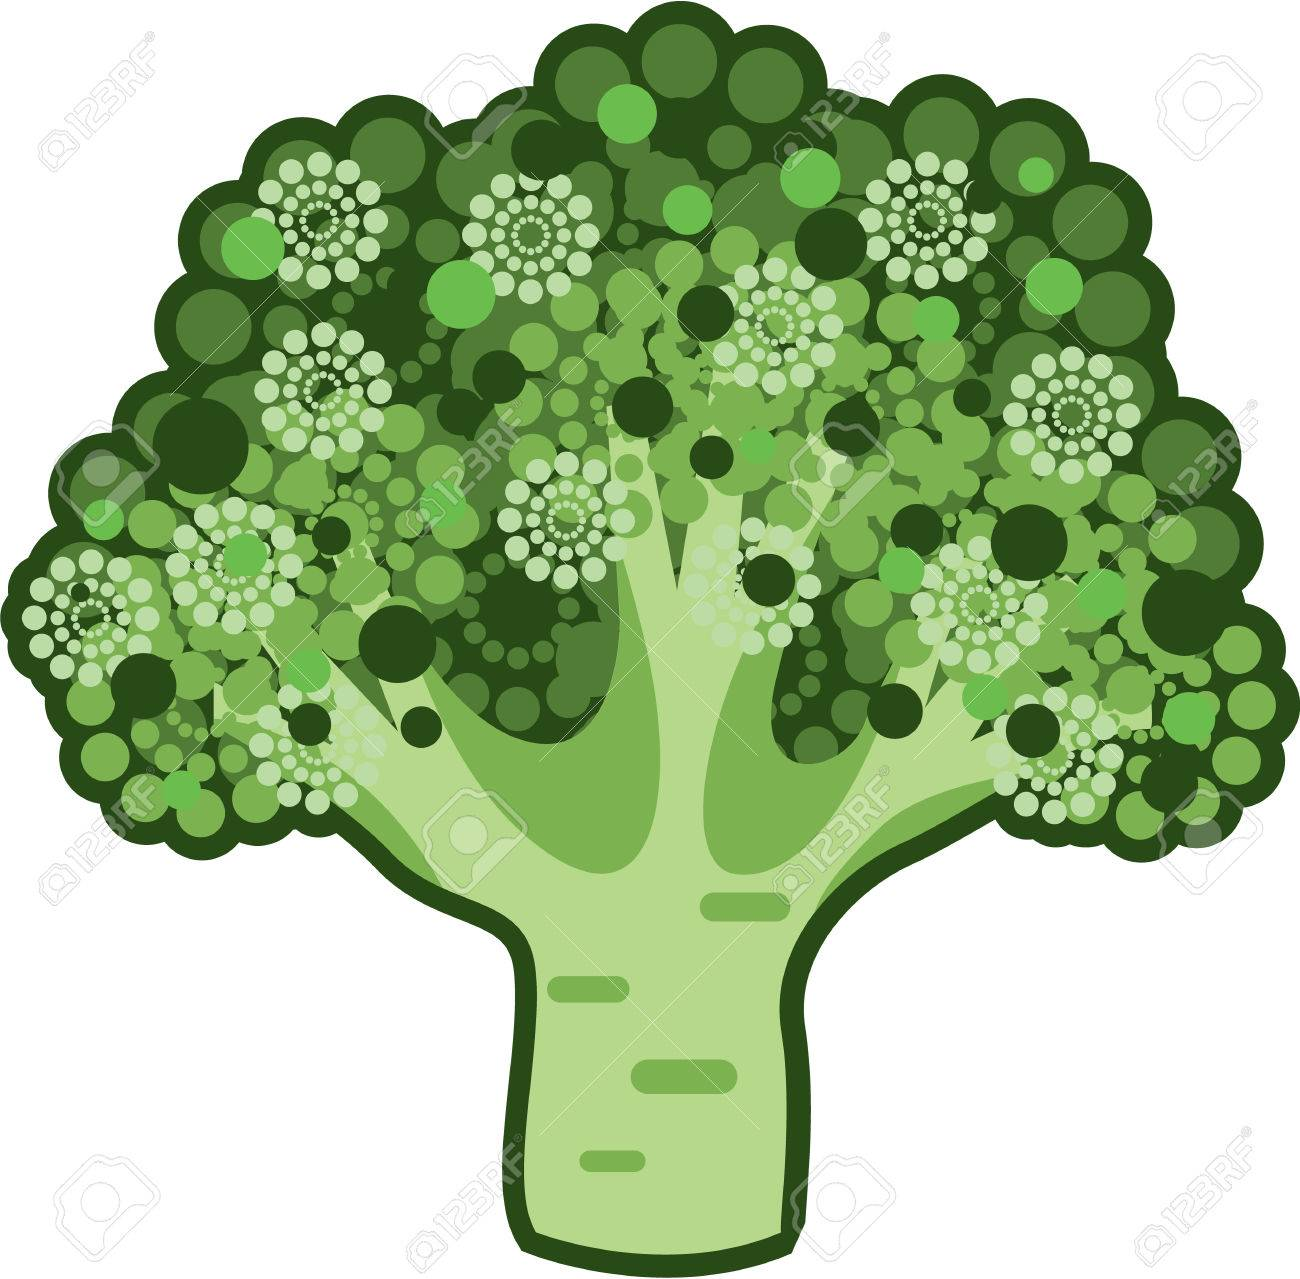 Get Broccoli Vector Art